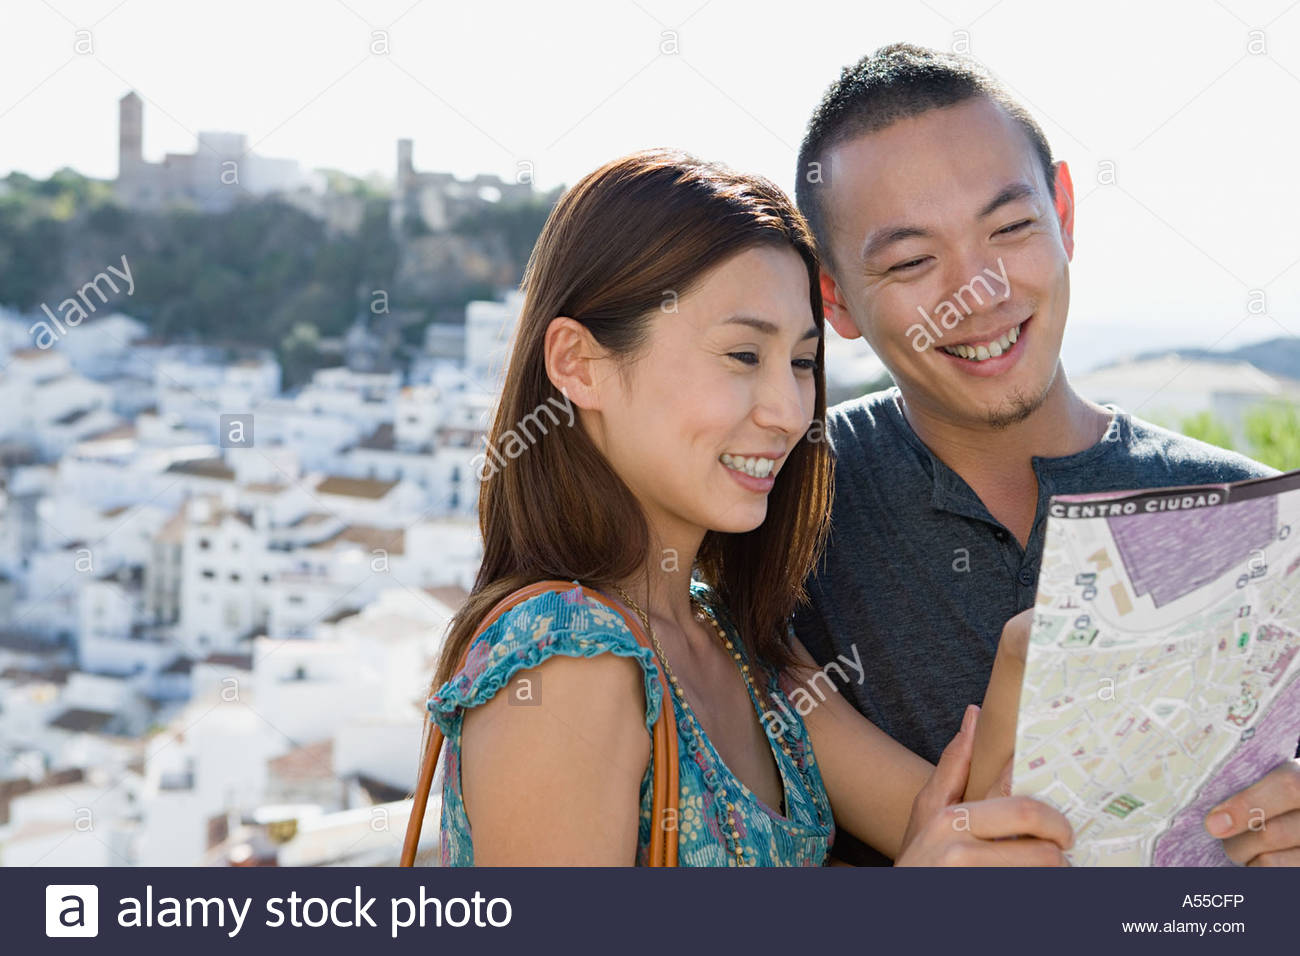 Couple looking at a map Photo Stock